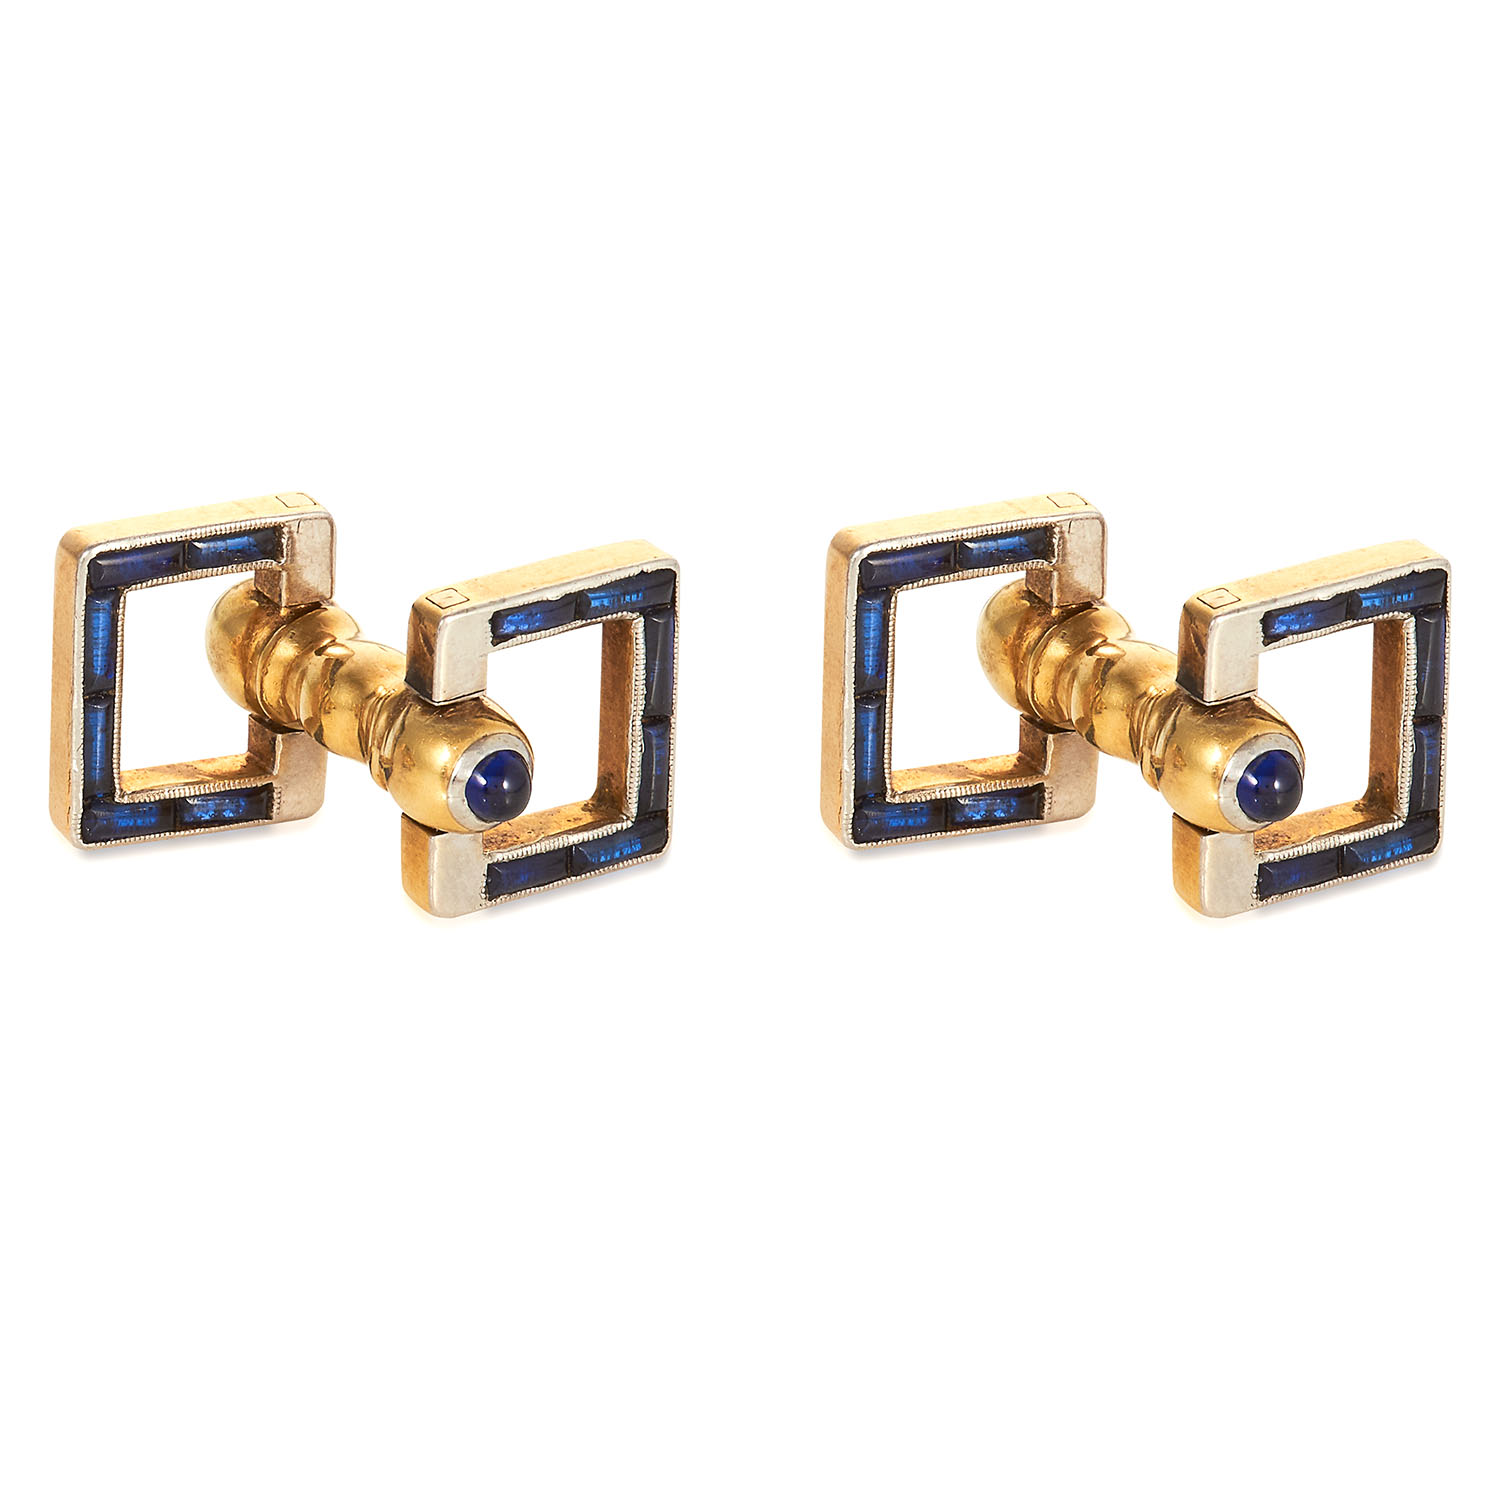 A PAIR OF ANTIQUE SAPPHIRE CUFFLINKS in yellow gold, jewelled with cabochon sapphires in square